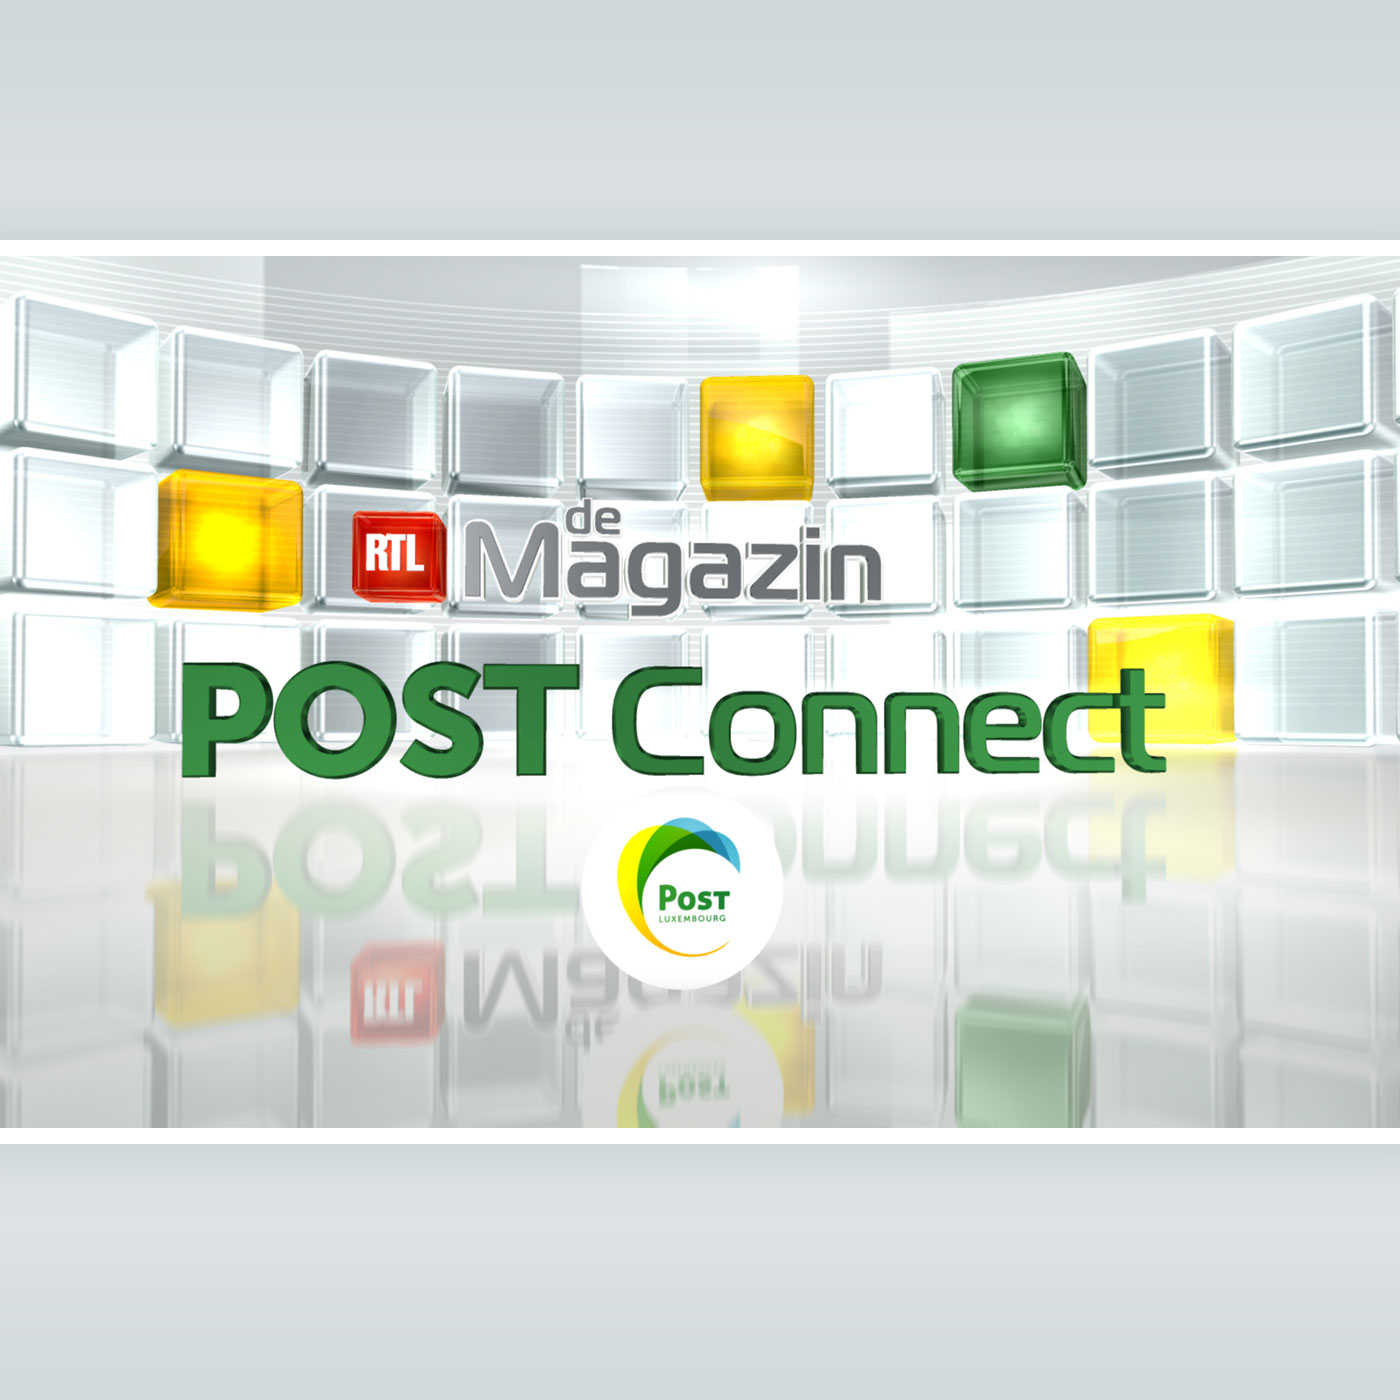 RTL - POST Connect (Small)